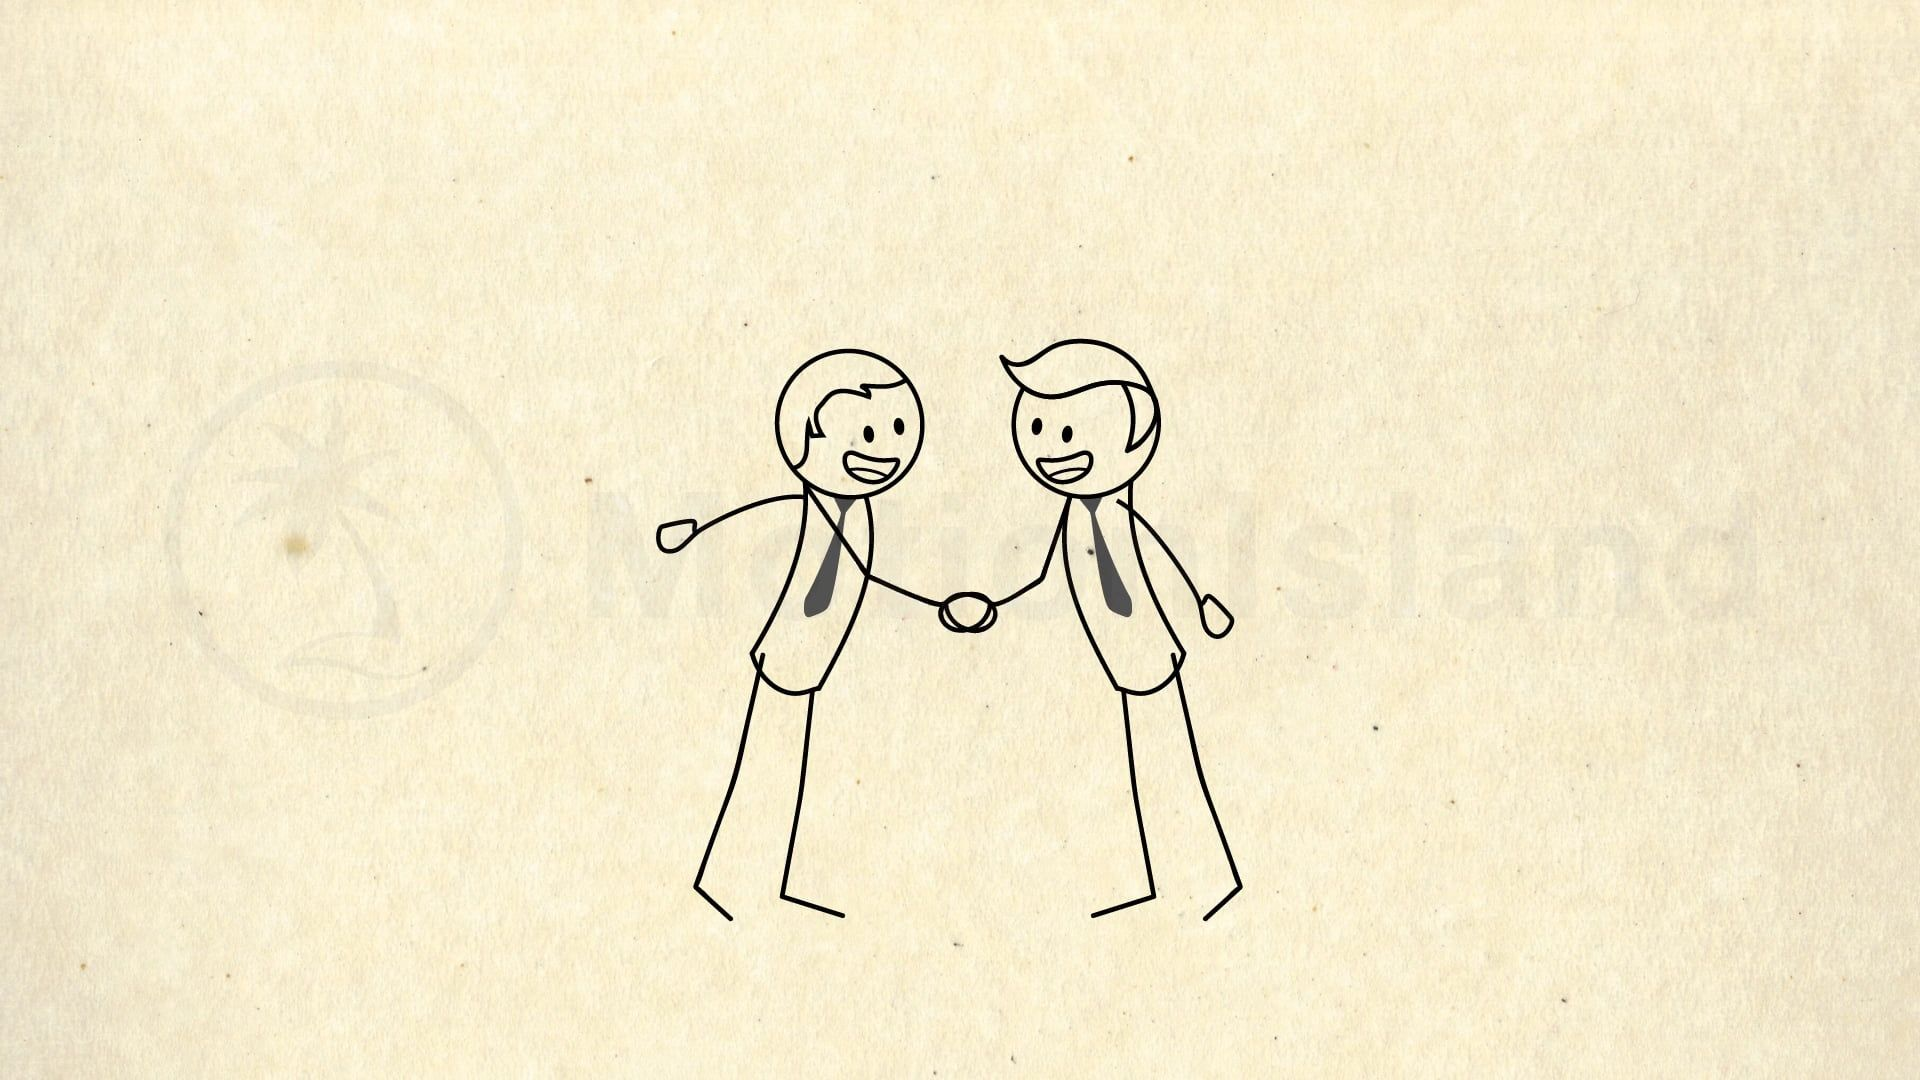 Stick figure Hand Shake | After Effects Template Animation